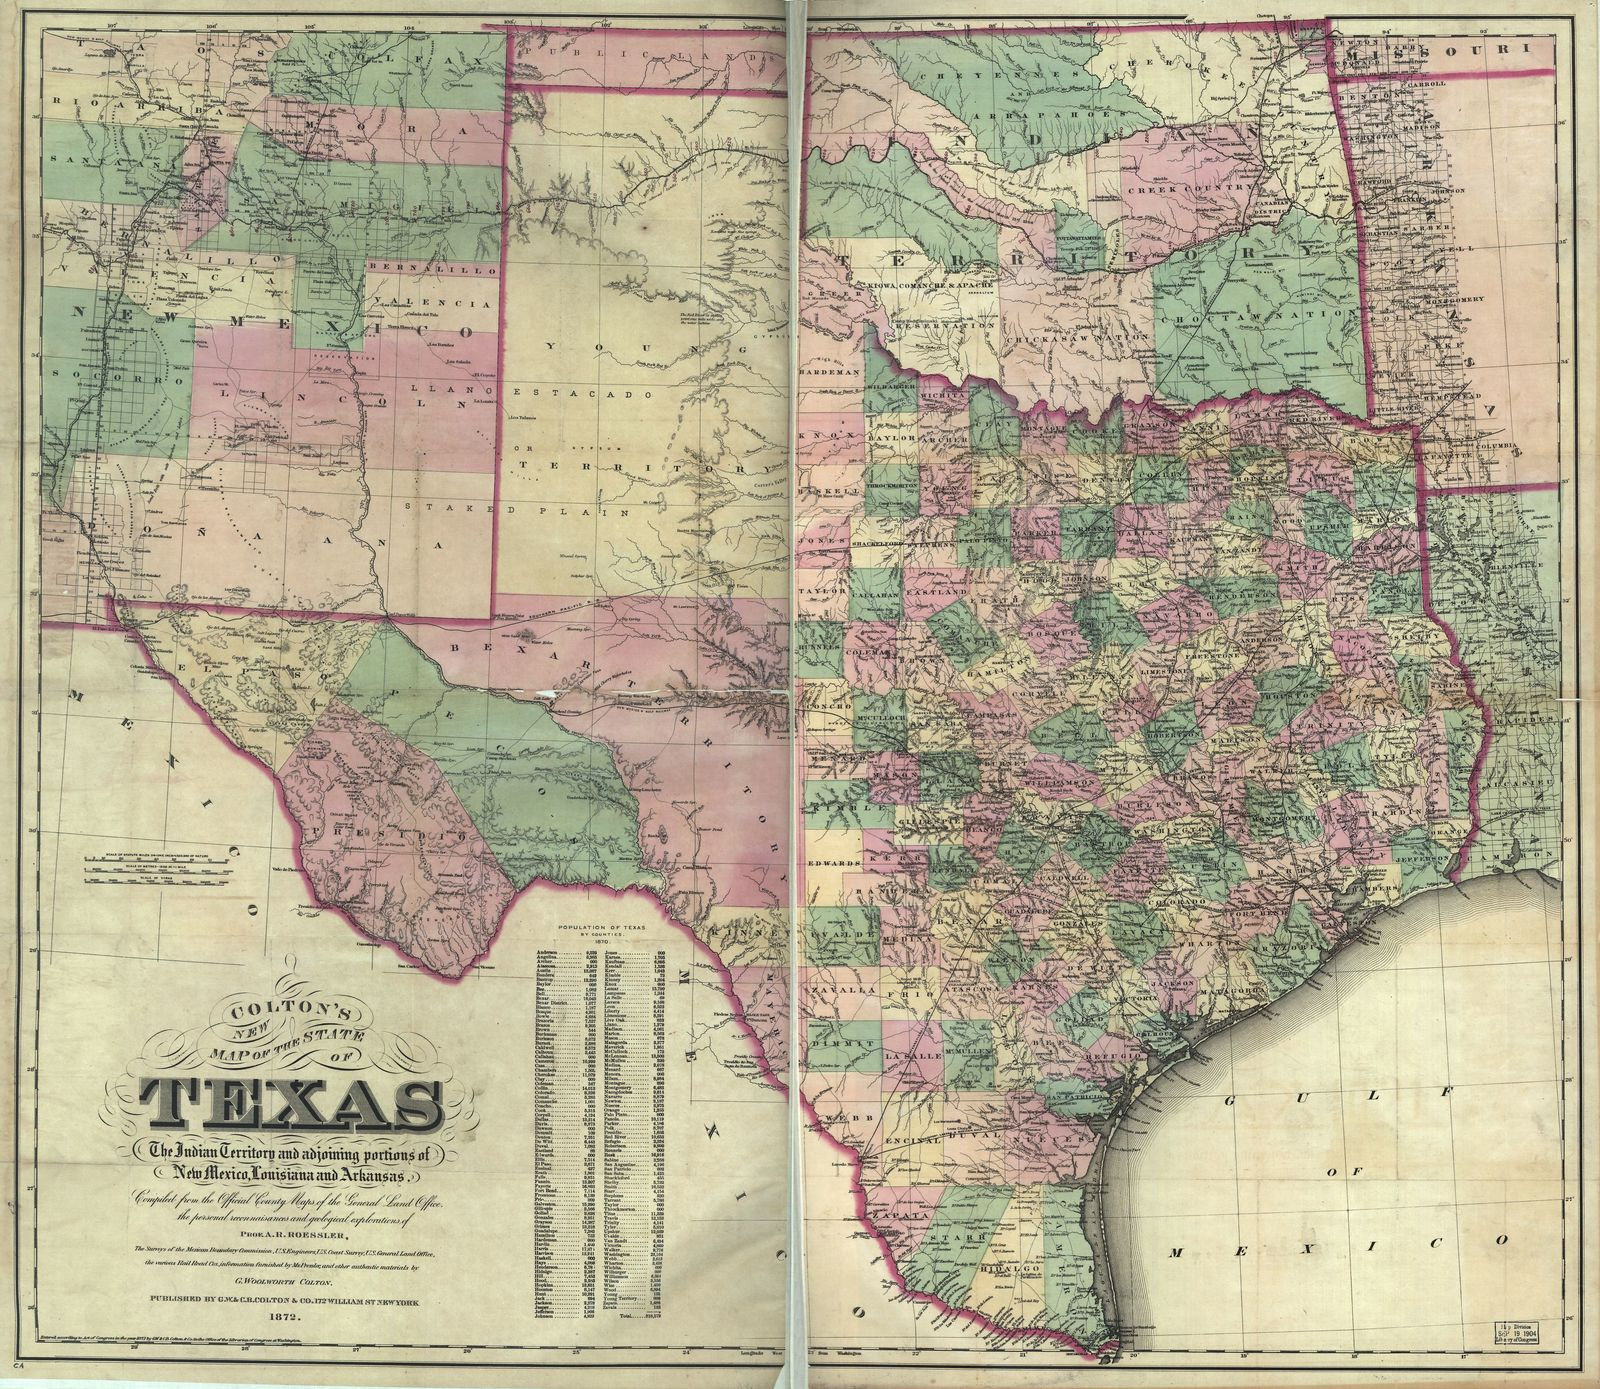 Map Of Texas And Louisiana Border.Colton S New Map Of The State Of Texas The Indian Territory And